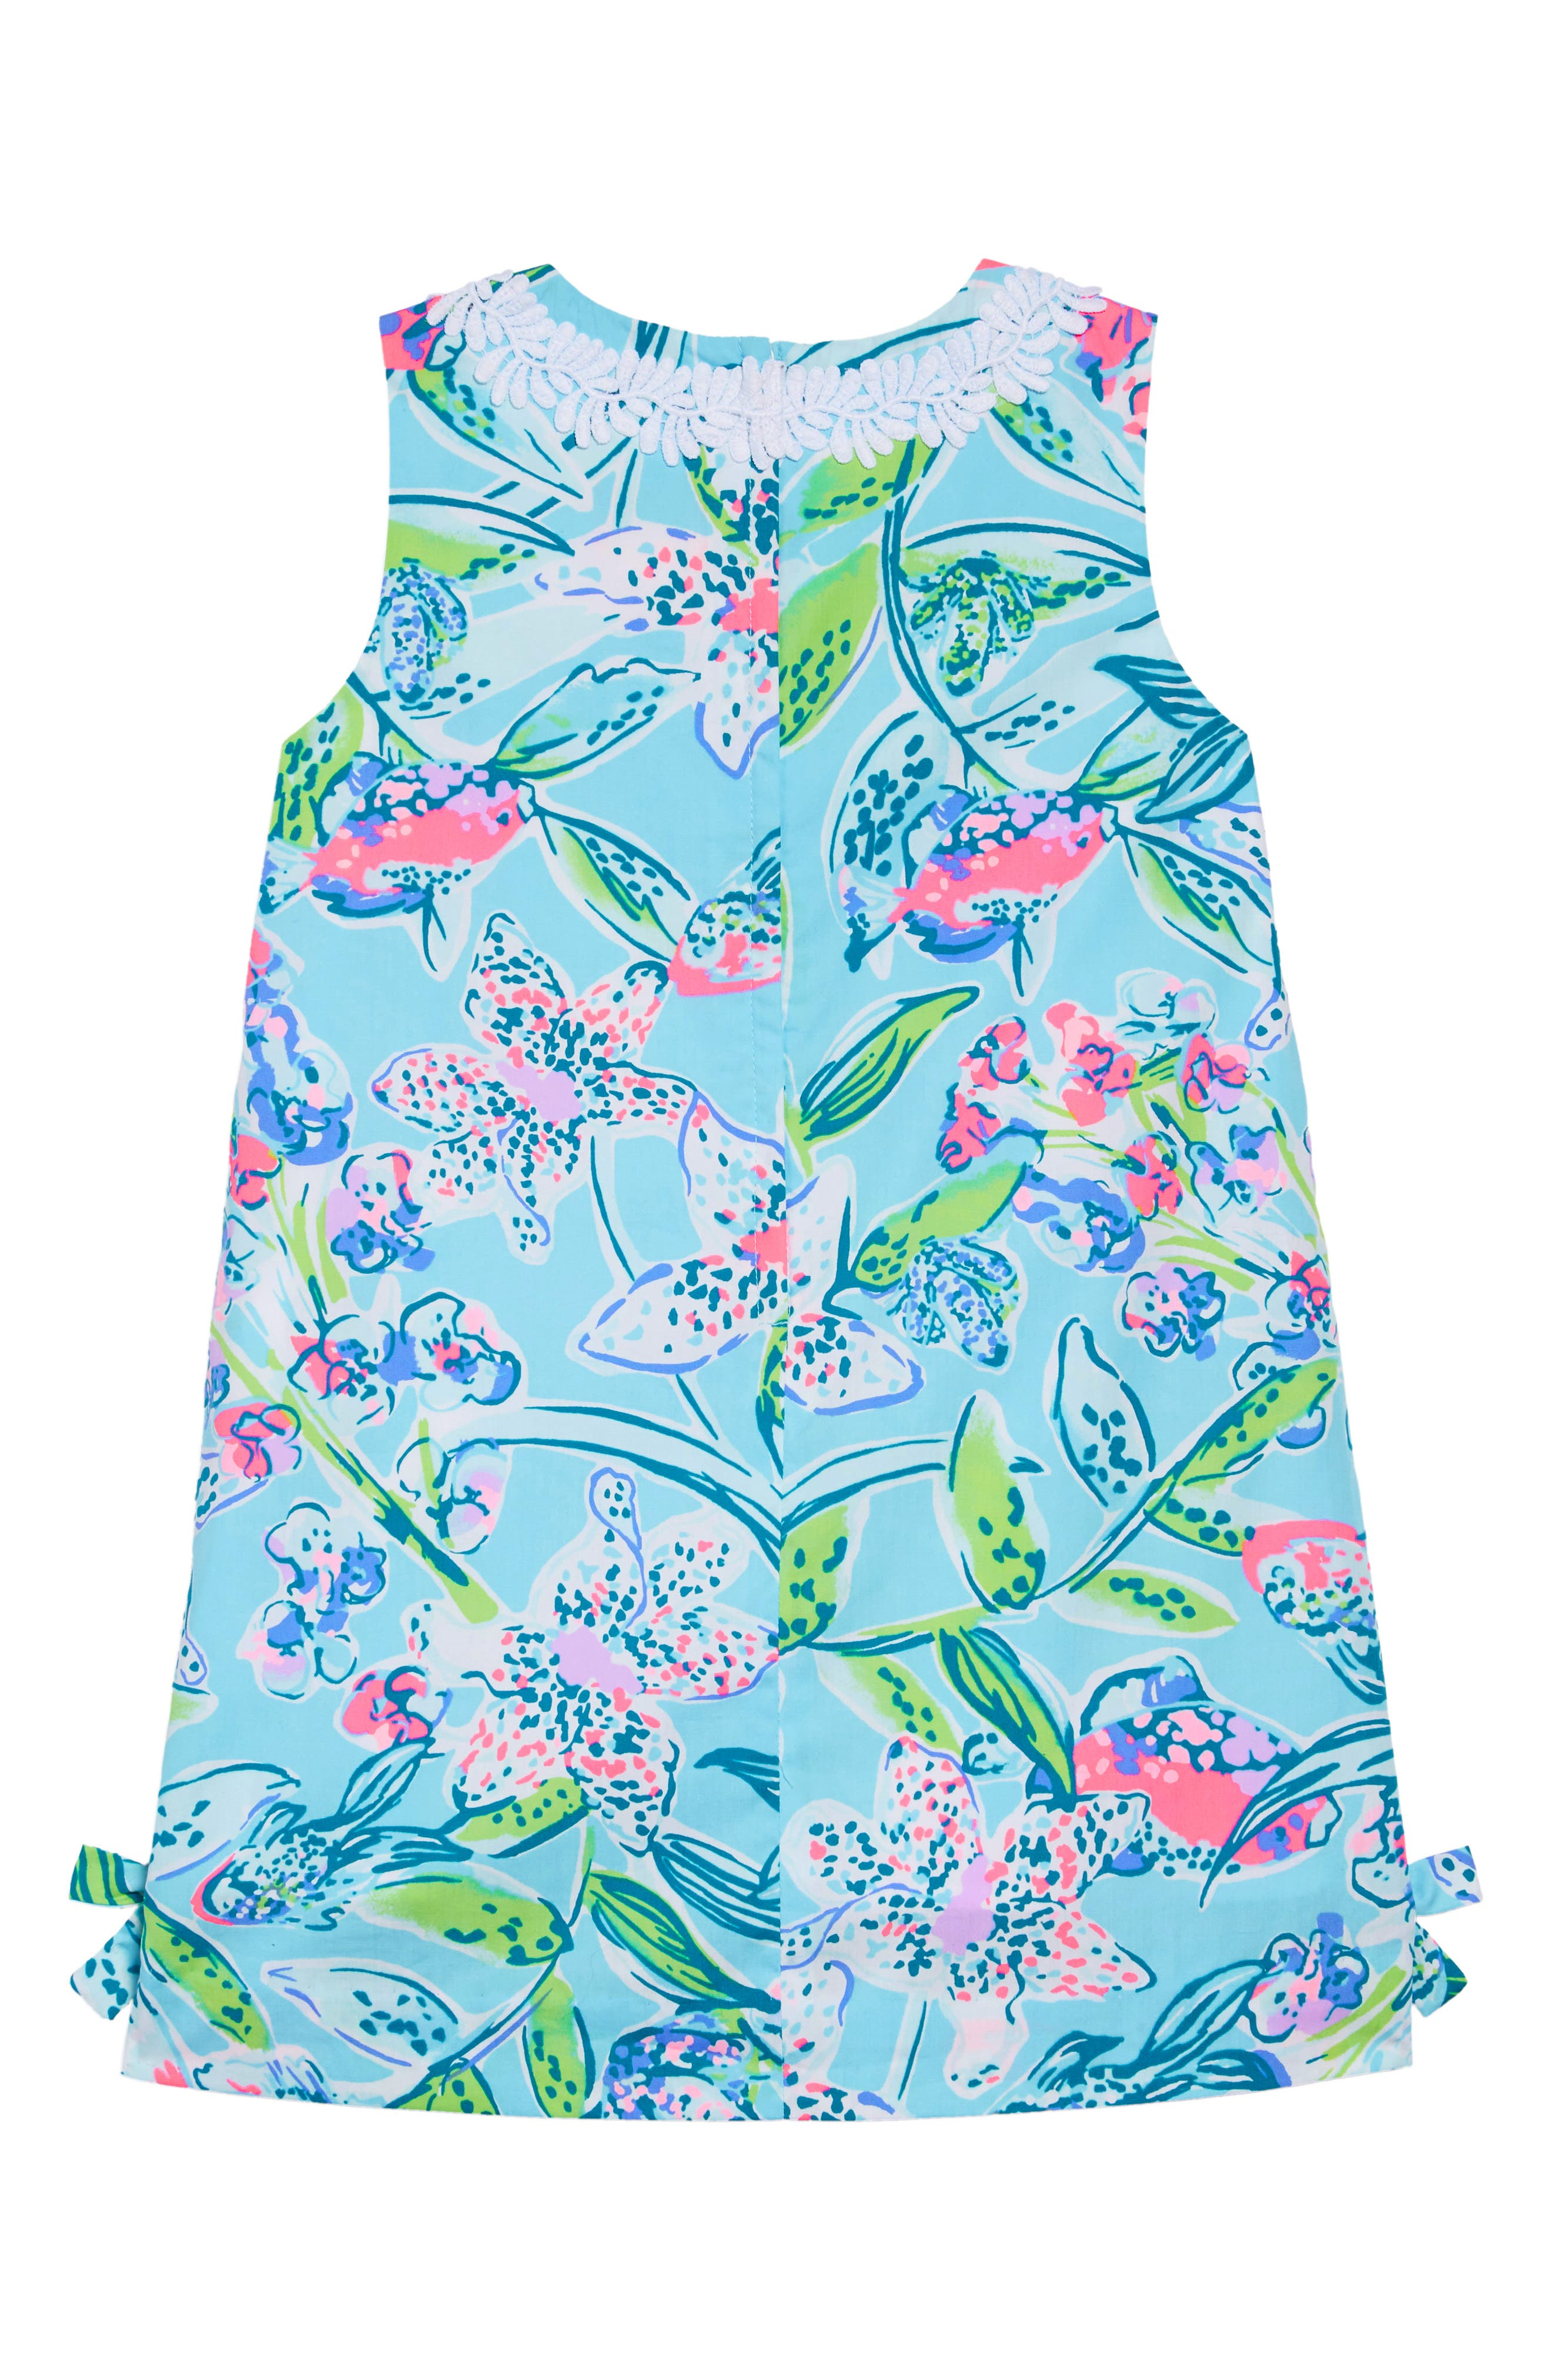 LILLY PULITZER<SUP>®</SUP>, Little Lilly Classic Shift Dress, Alternate thumbnail 2, color, BALI BLUE SWAY THIS WAY